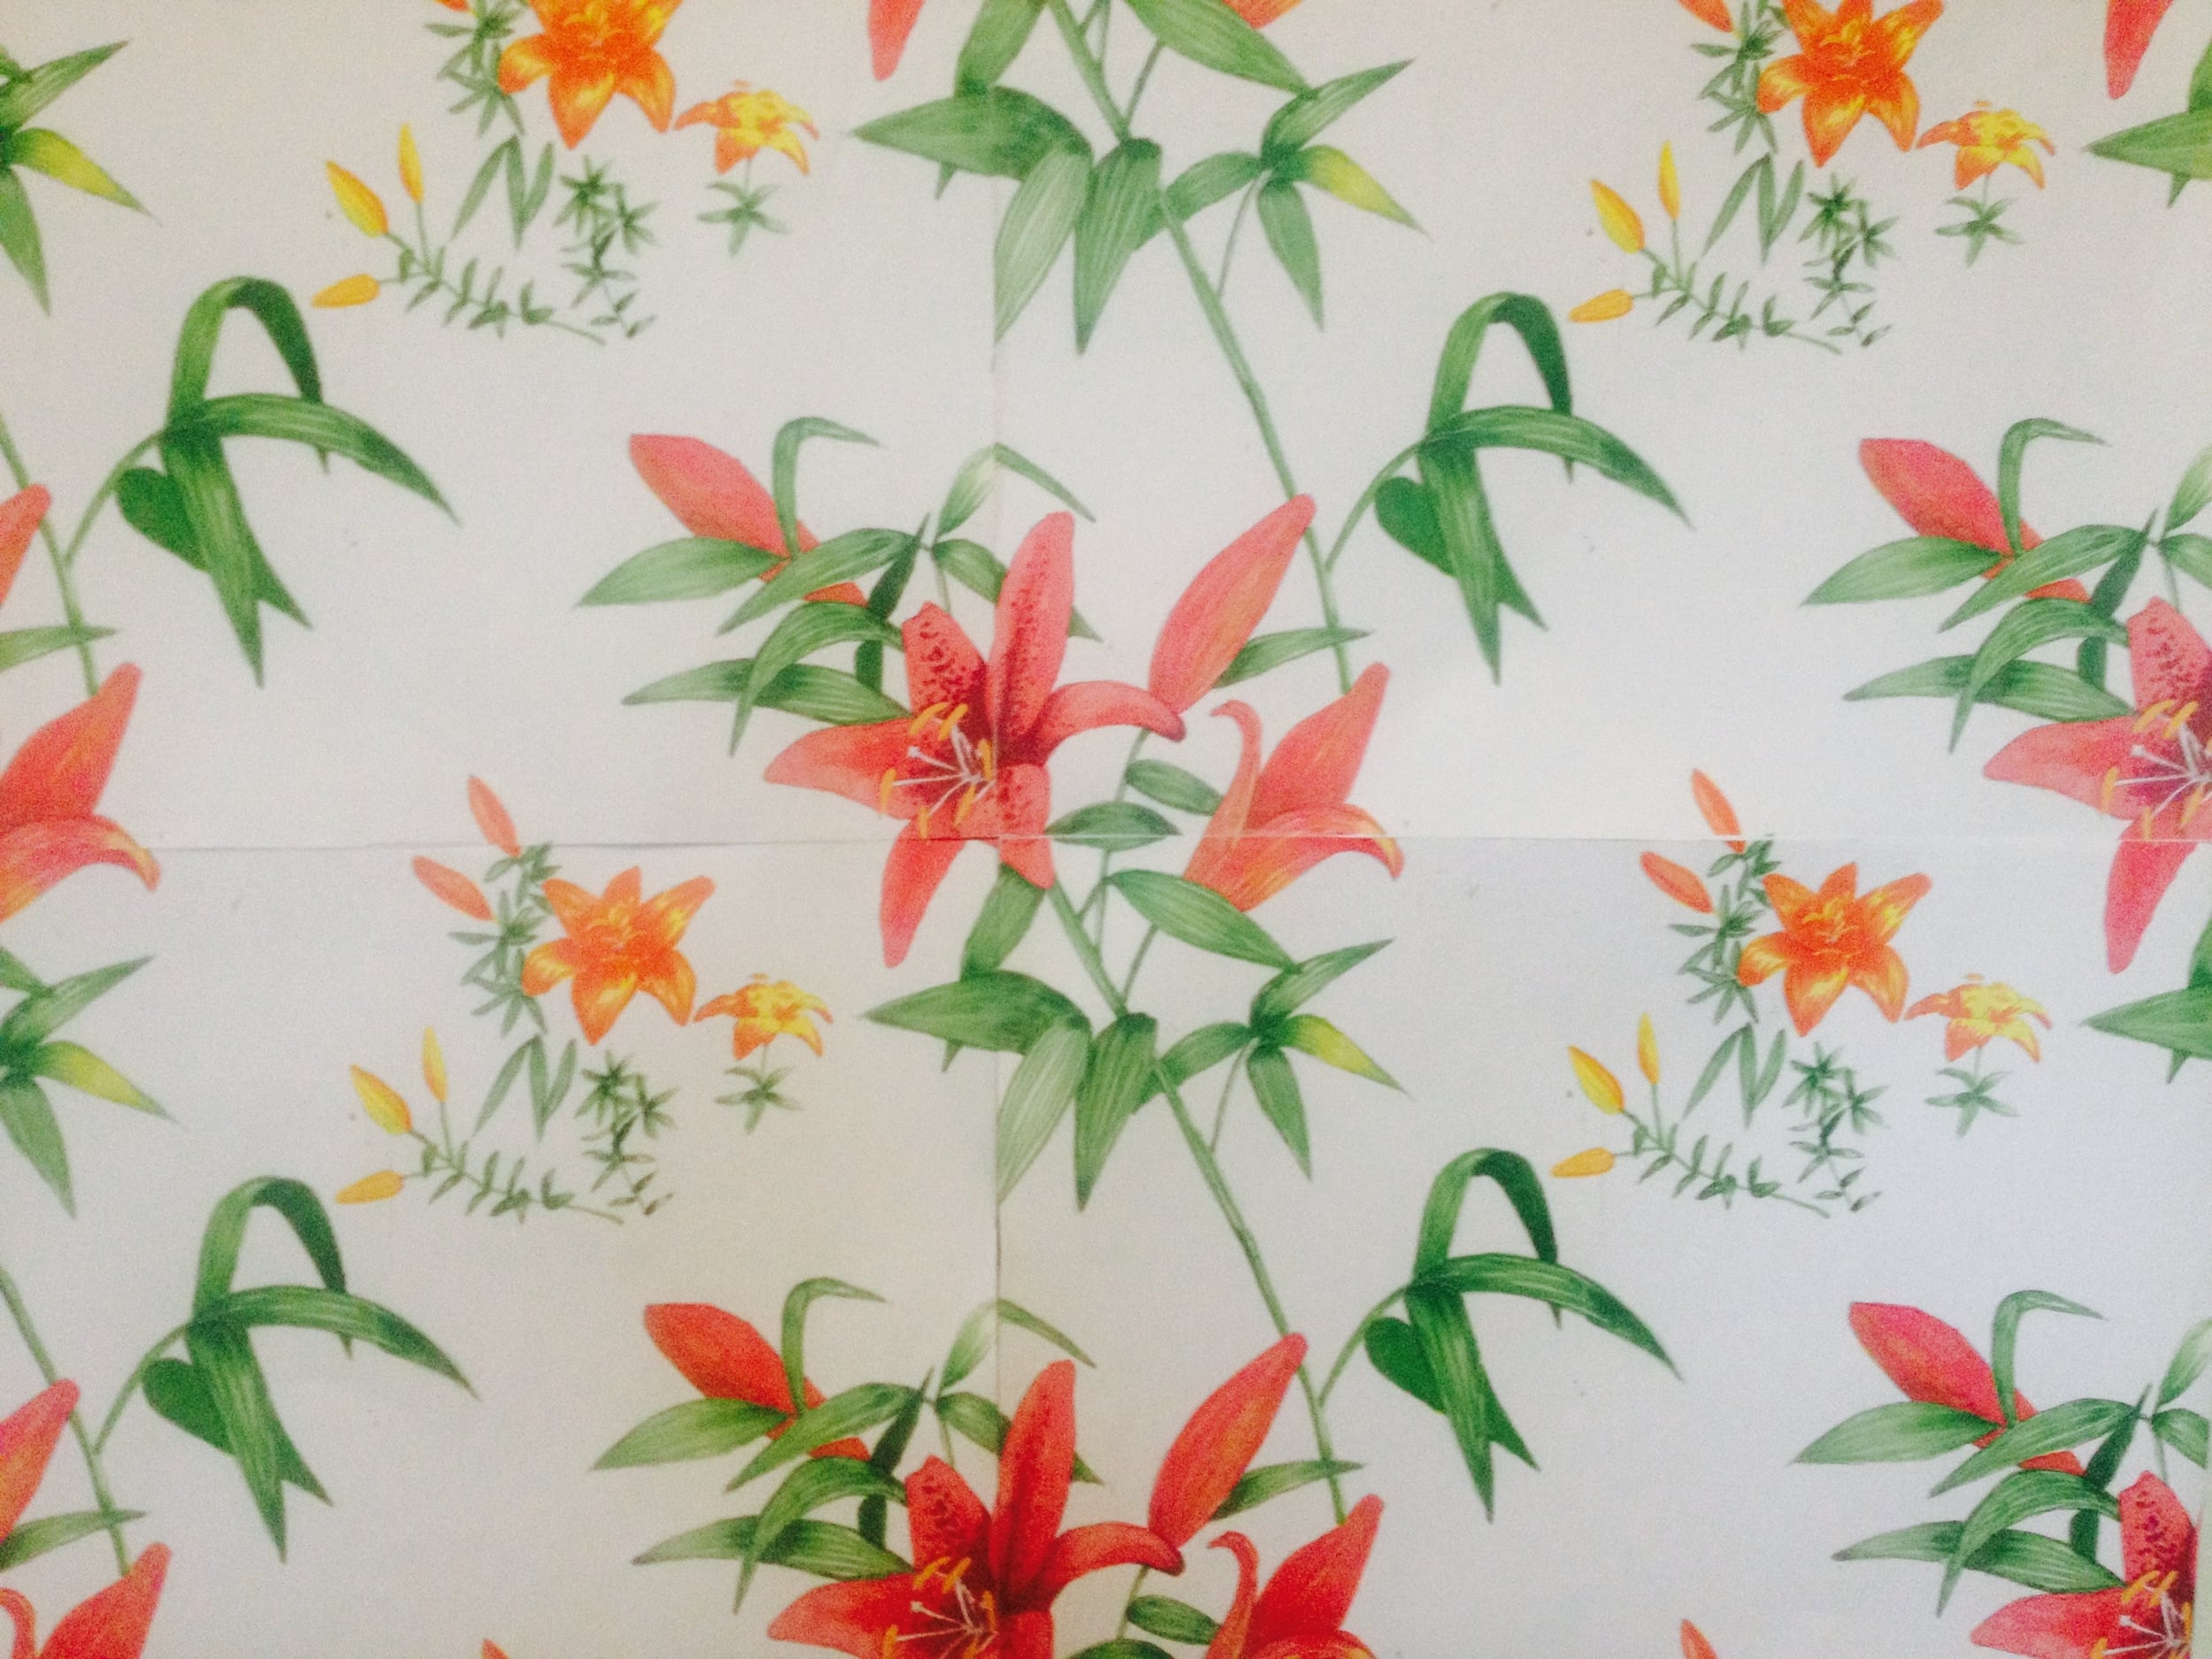 The first pattern I ever made, created during that course. Red and orange lilies and stems, drawn and colored with markers, then copied and assembled to a repeat manually with scissors and tape. I was hooked.